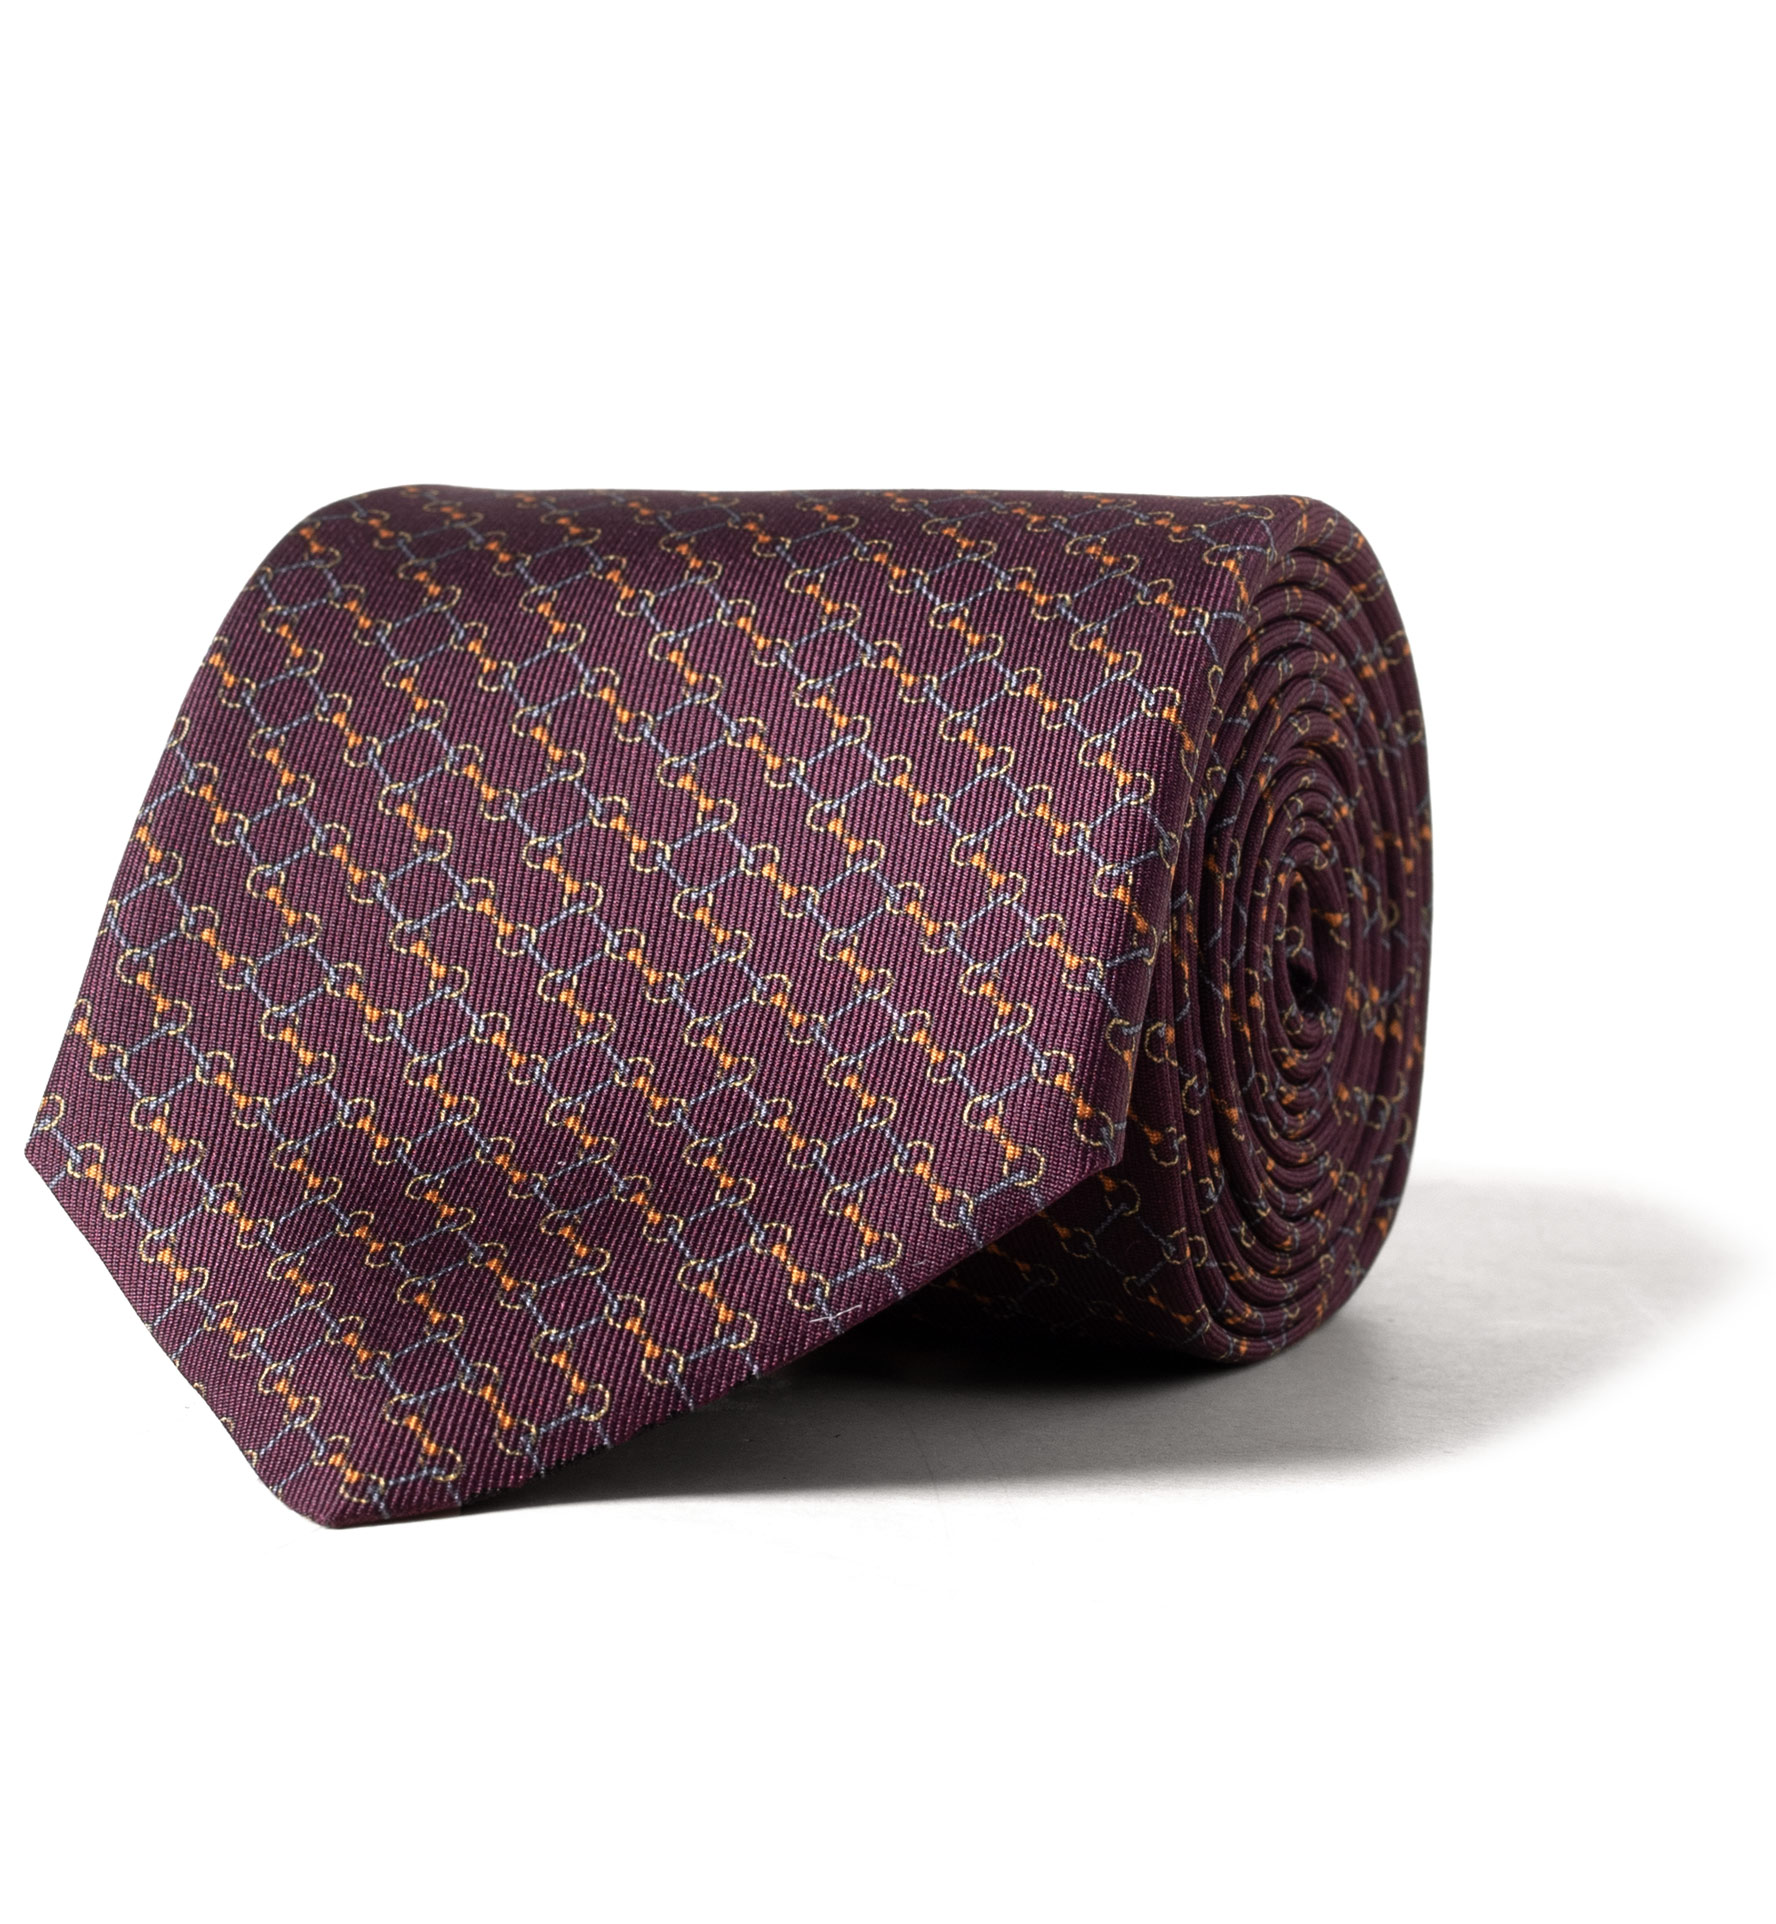 Zoom Image of Burgundy and Gold Bit Link Print Silk Tie